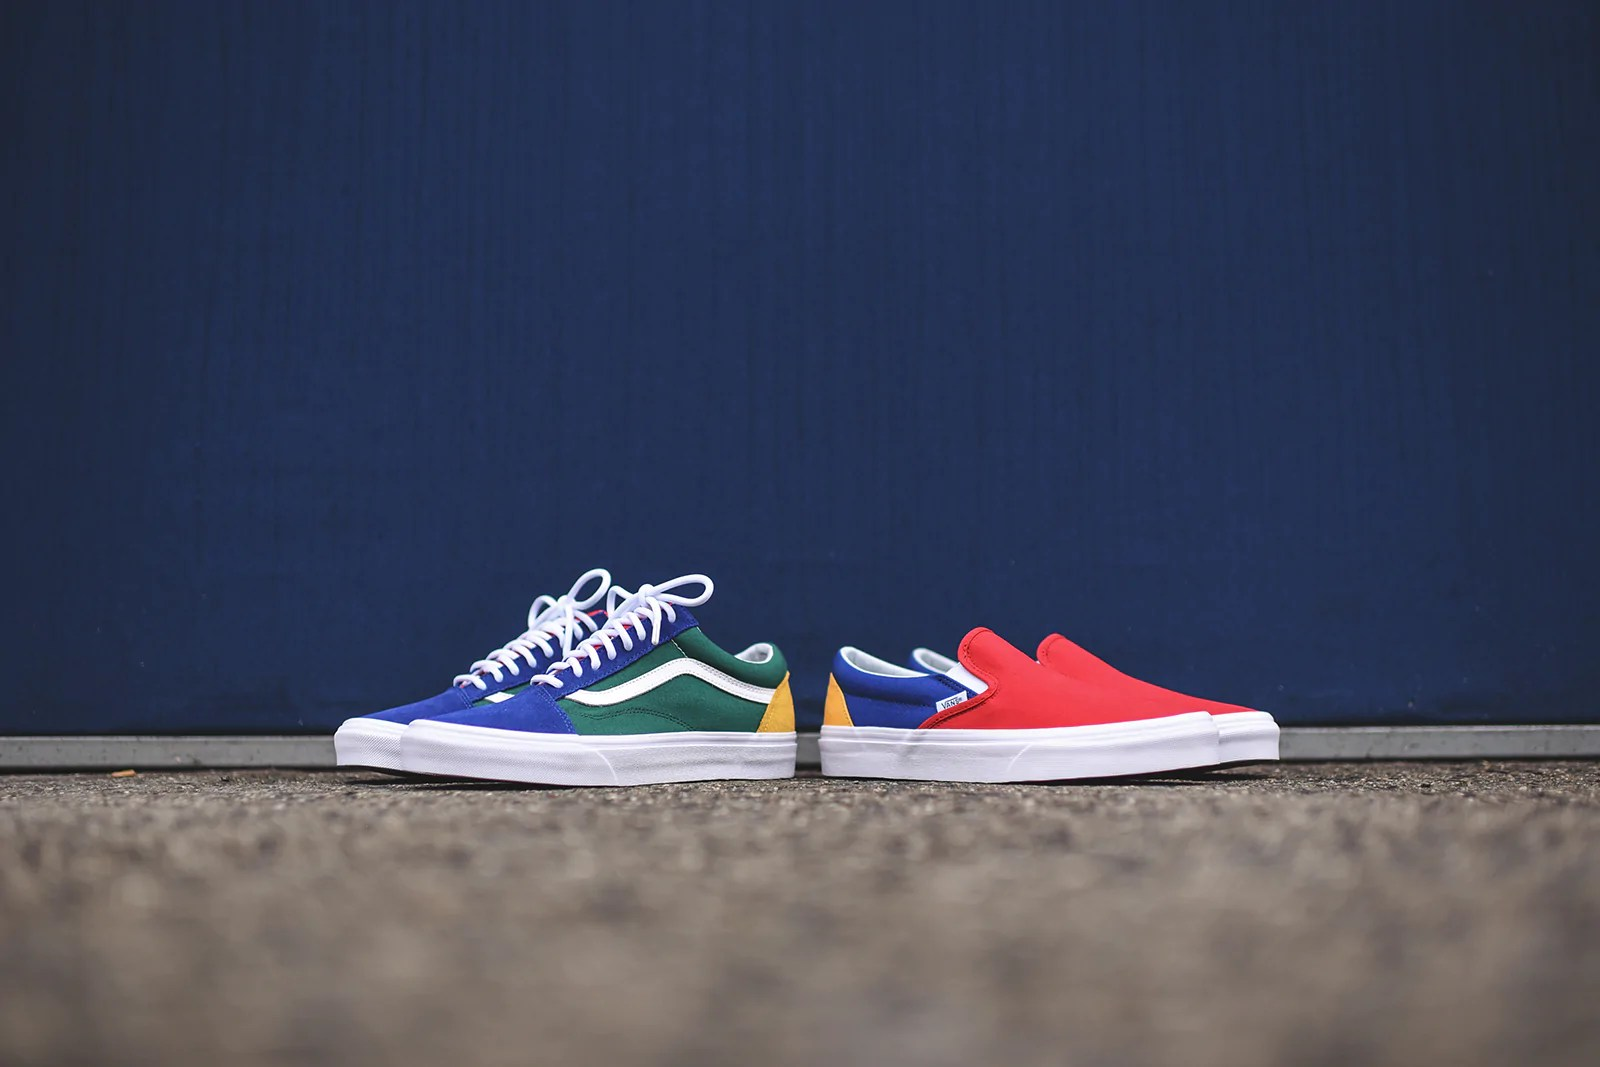 Vans Yacht Club Pack     Kith Vans Yacht Club Pack